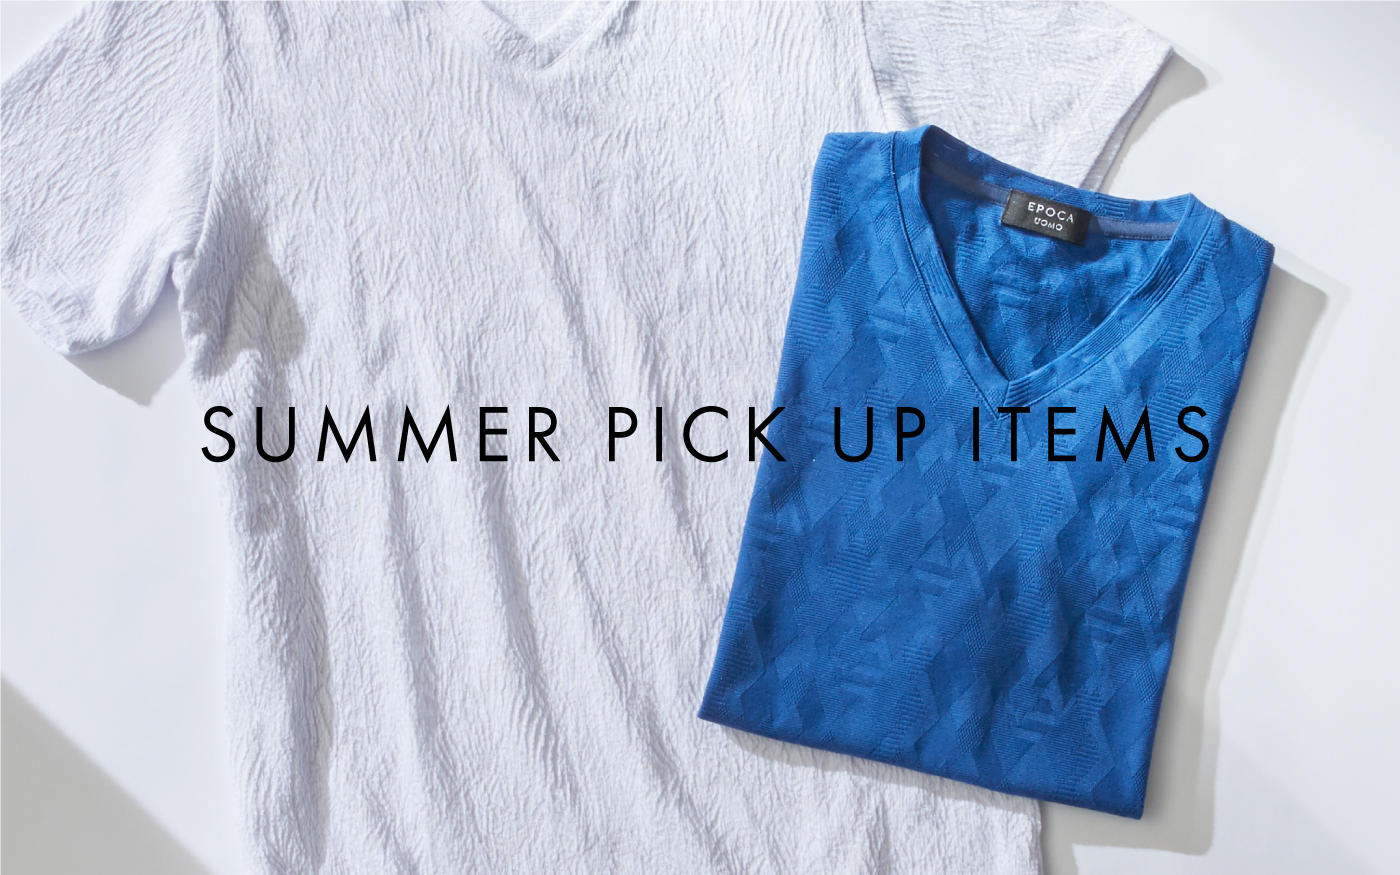 SUMMER PICK UP ITEMS